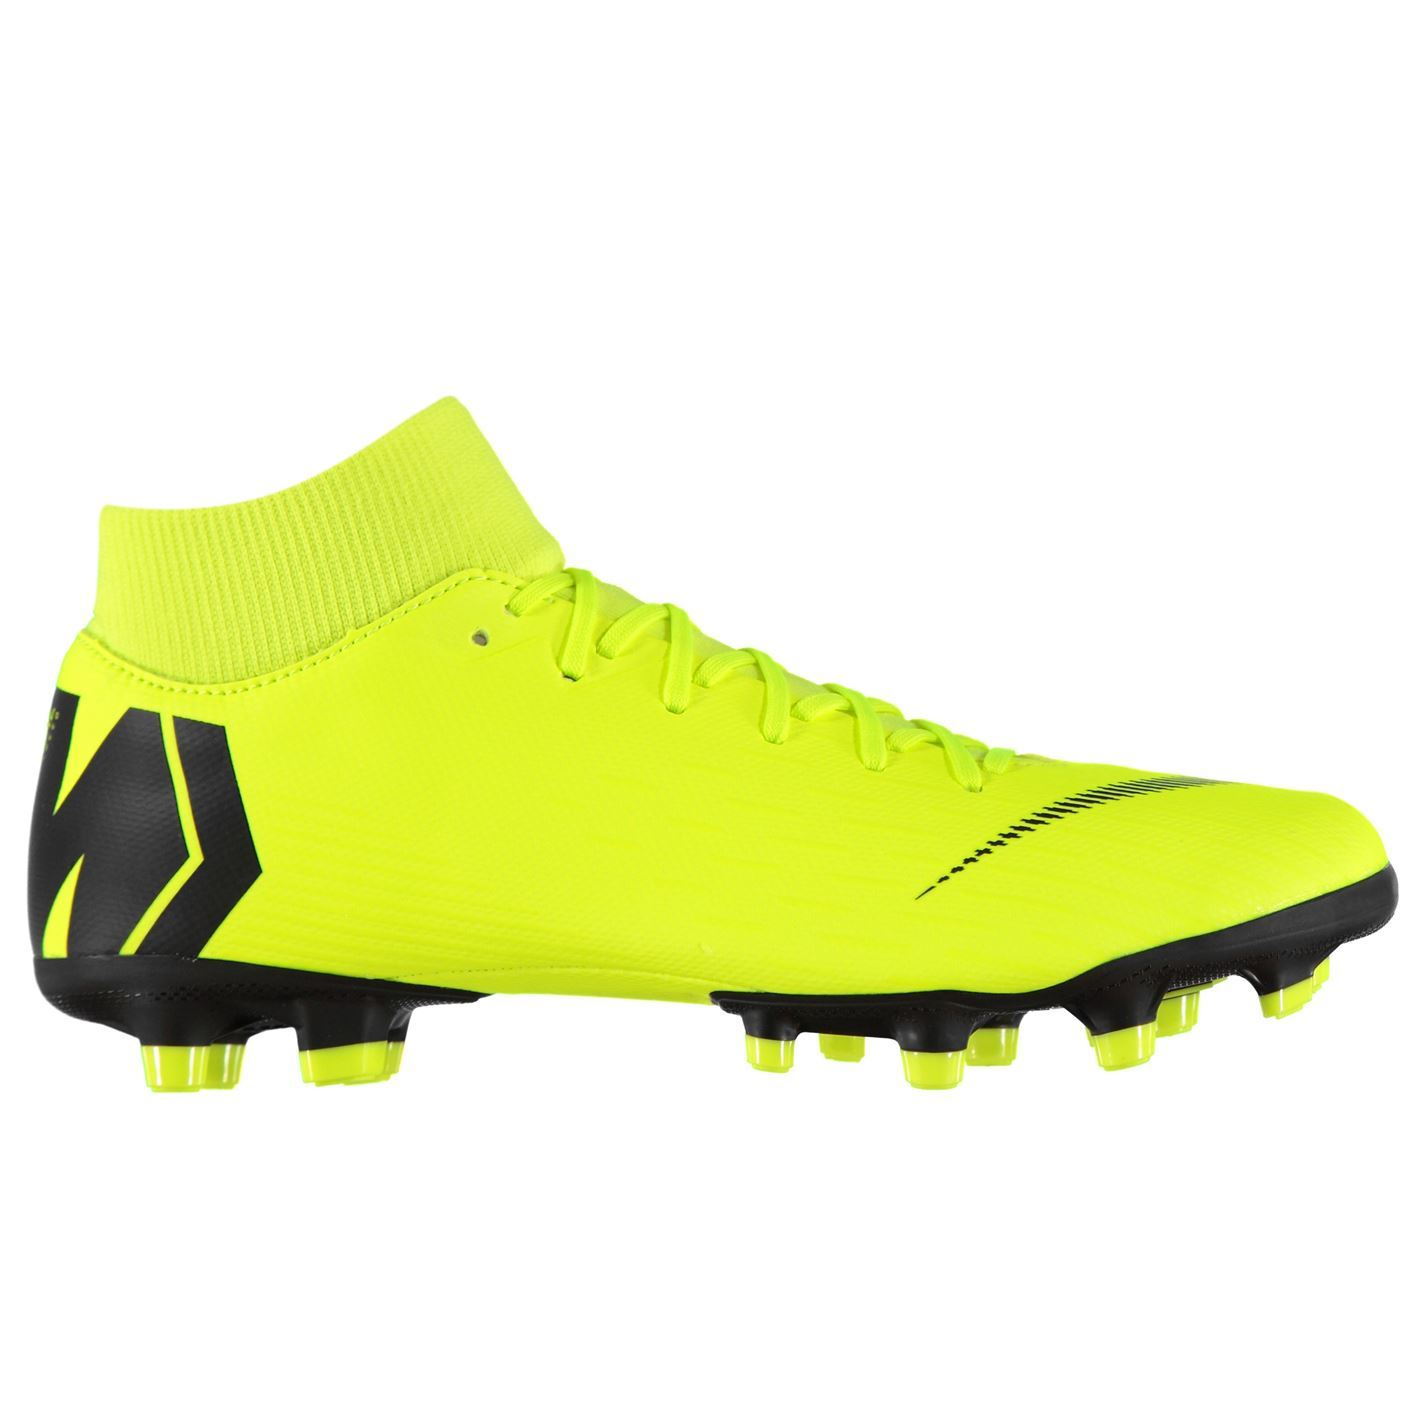 582adb31c ... Nike Mercurial Superfly Academy DF Firm Ground Football Boots Mens  Soccer Cleats